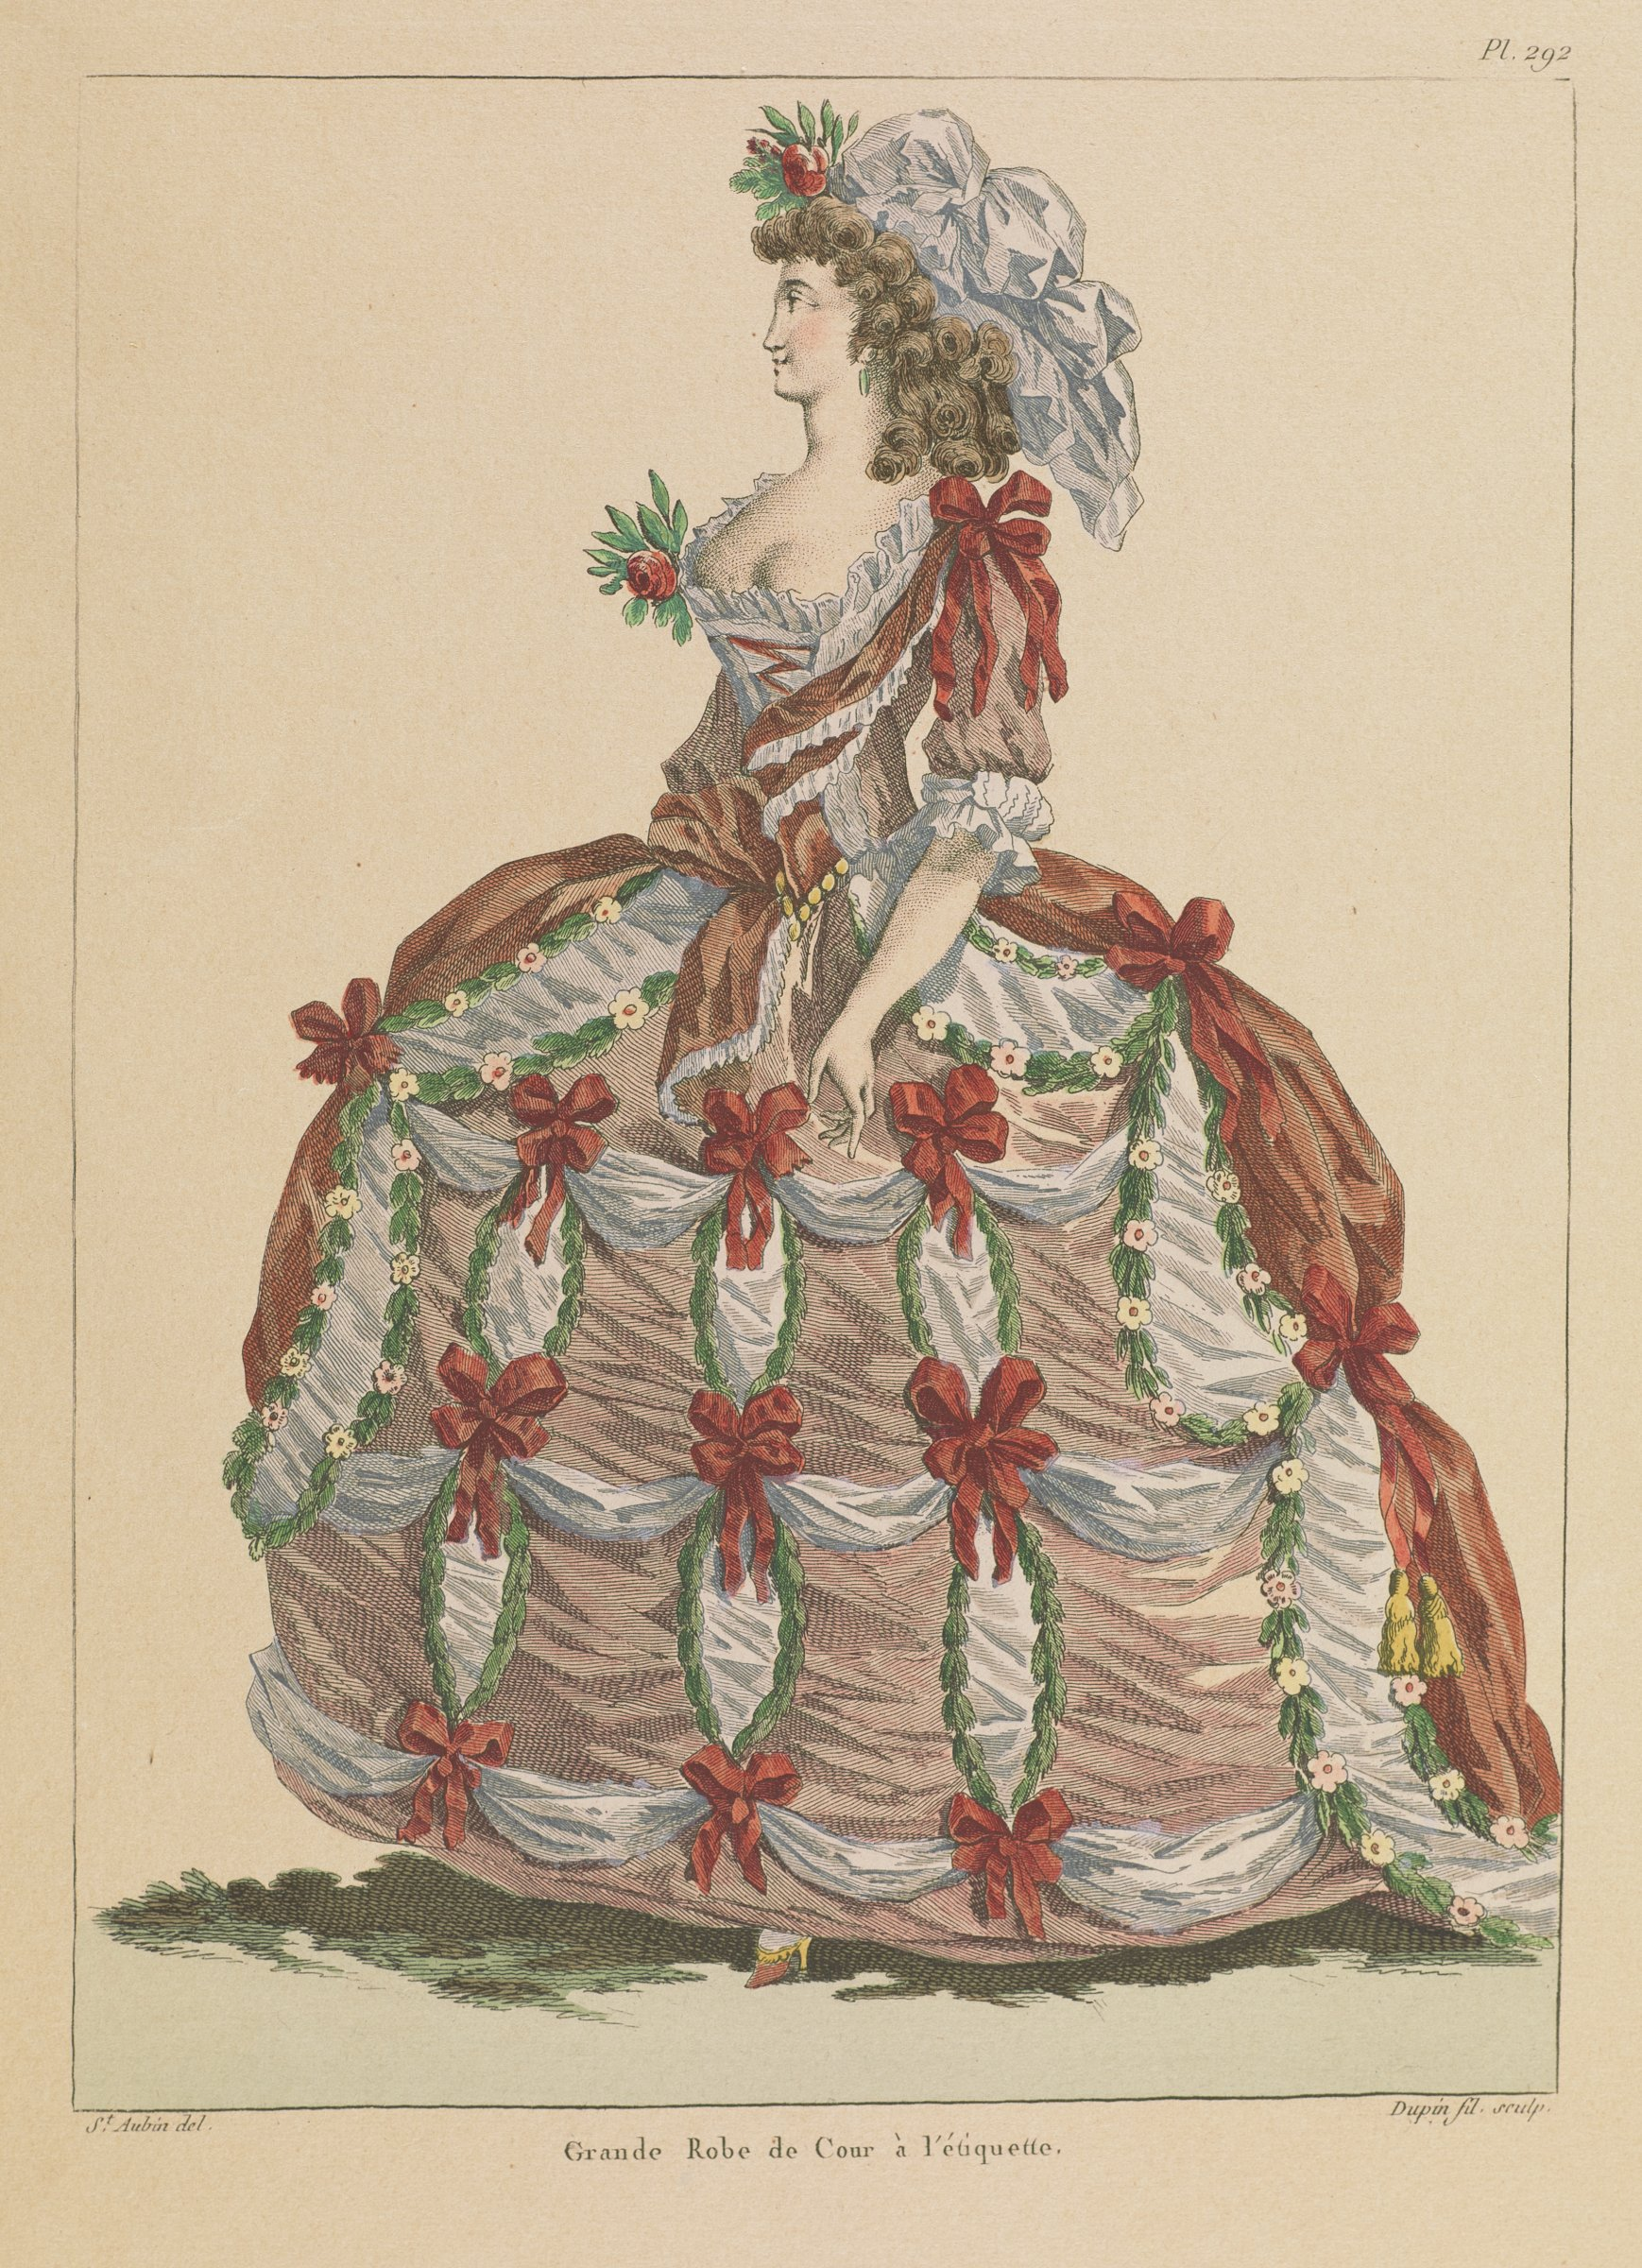 A woman in a dress with red bows and greenery stands facing slightly left.